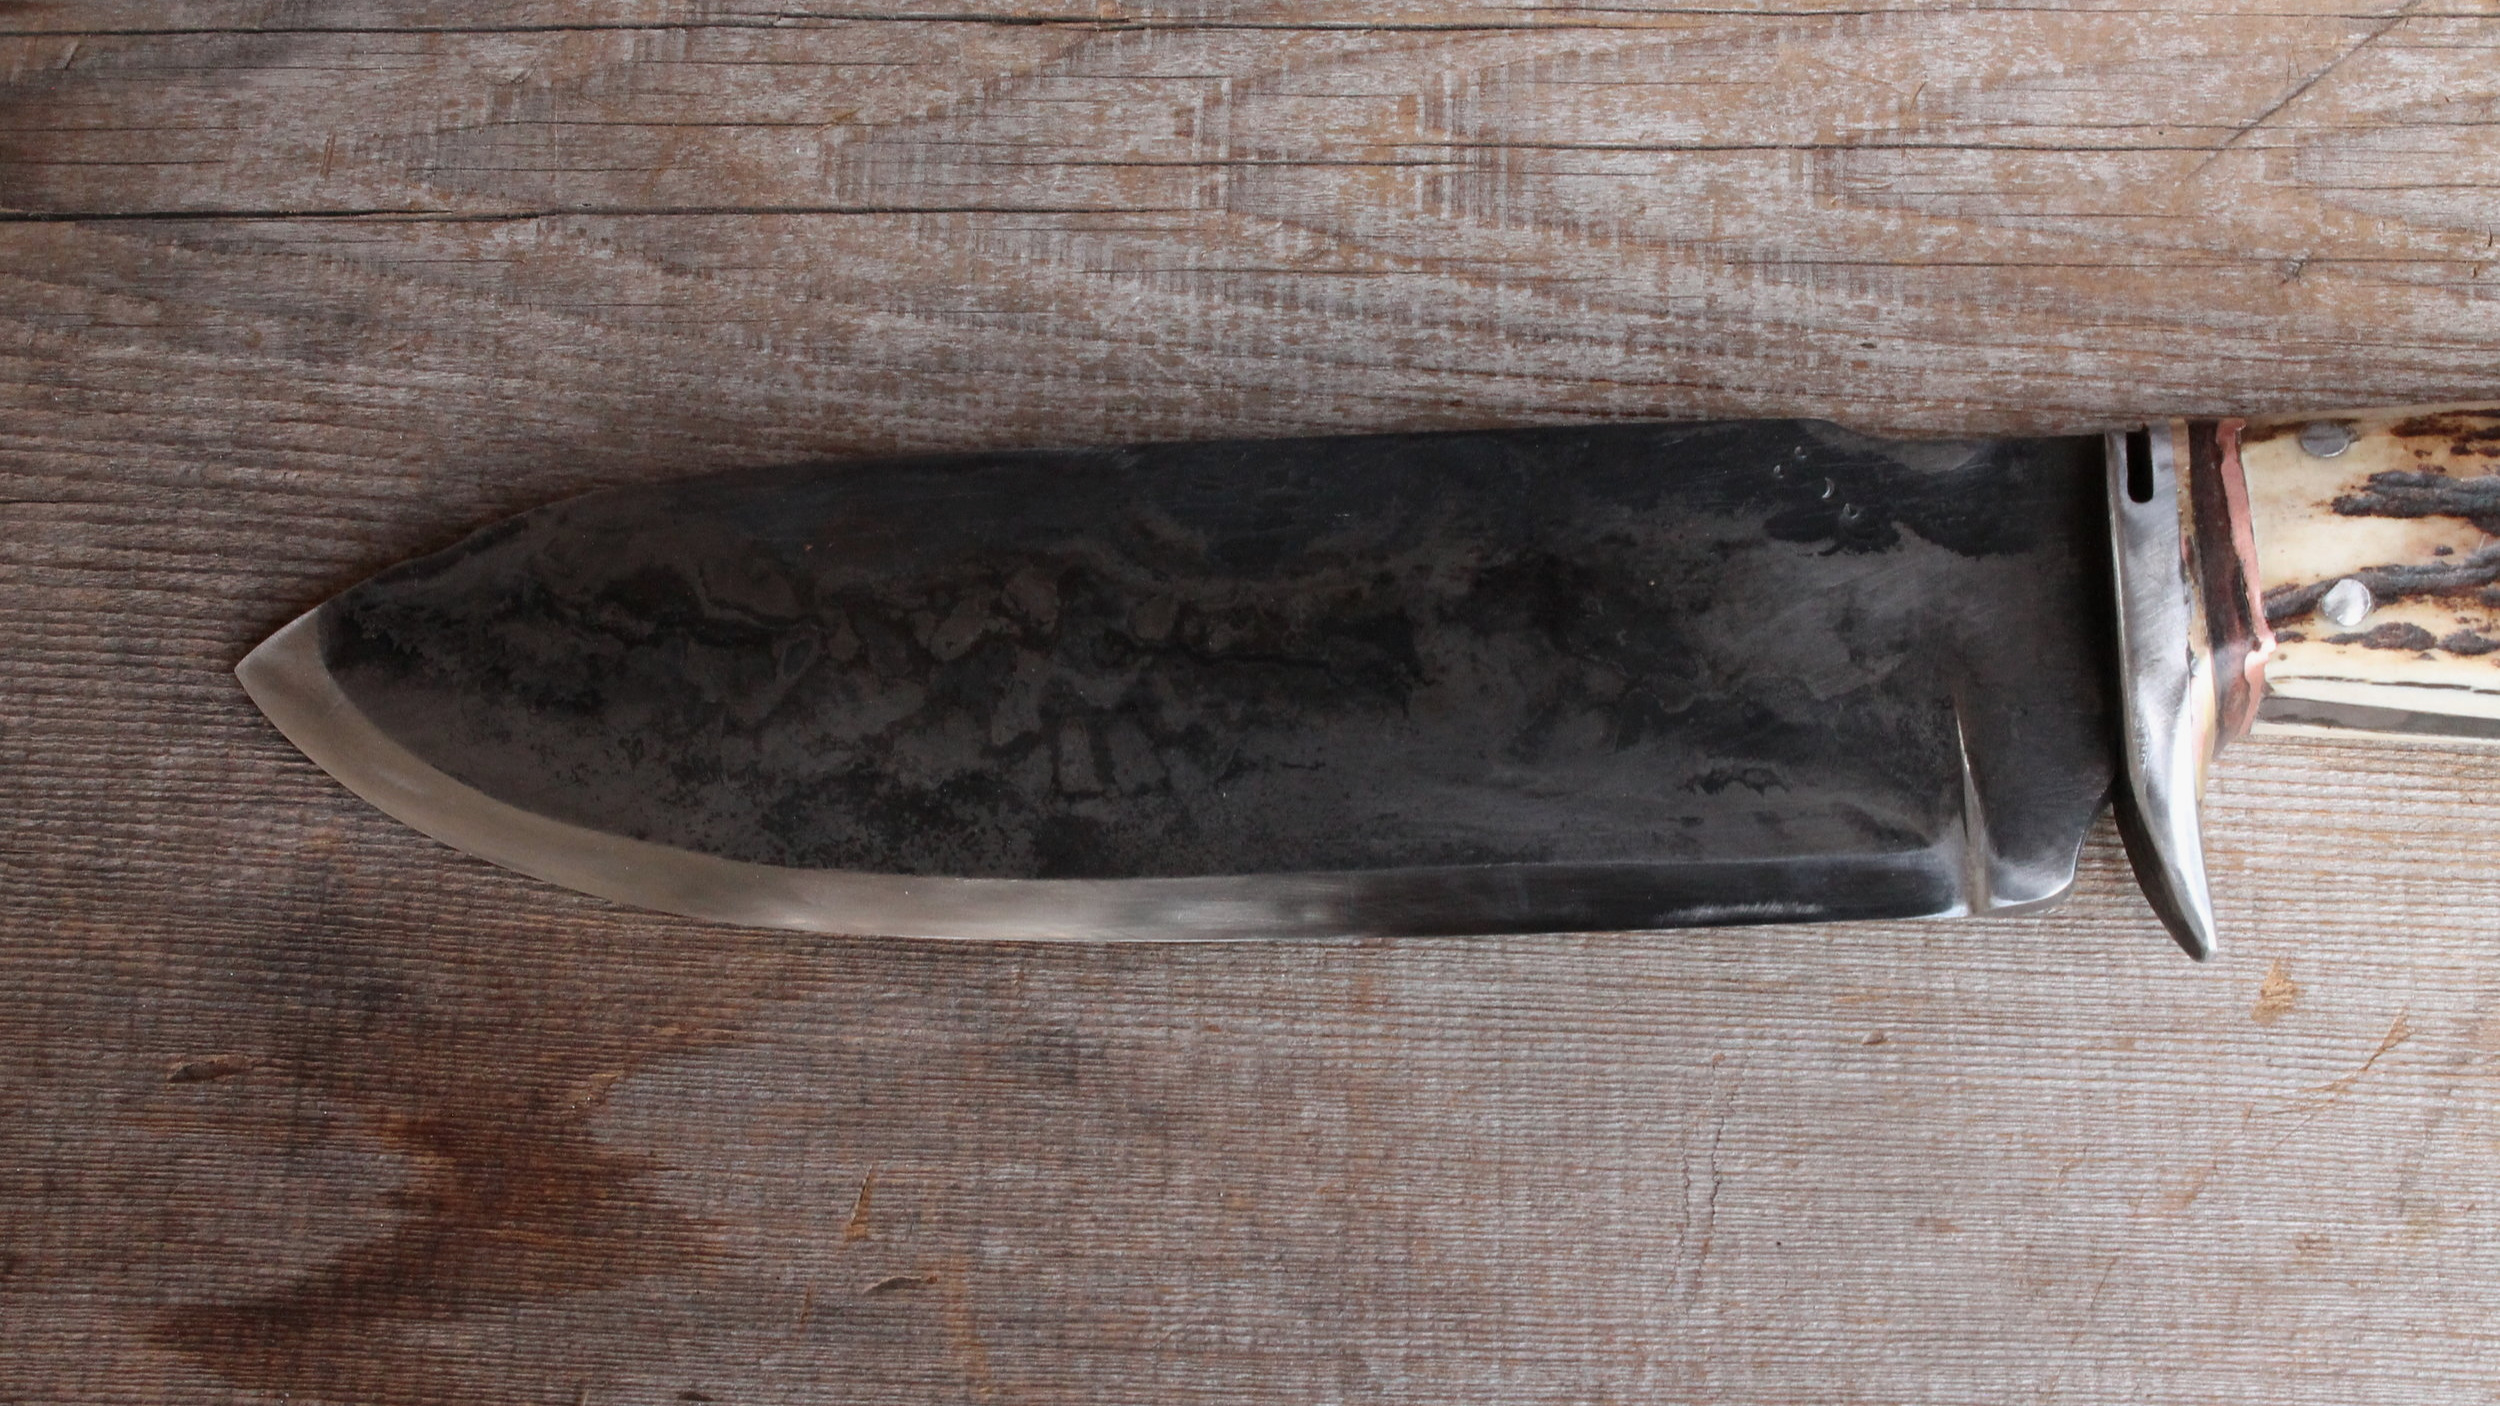 The Face of the Mt Caribou Survival Knife